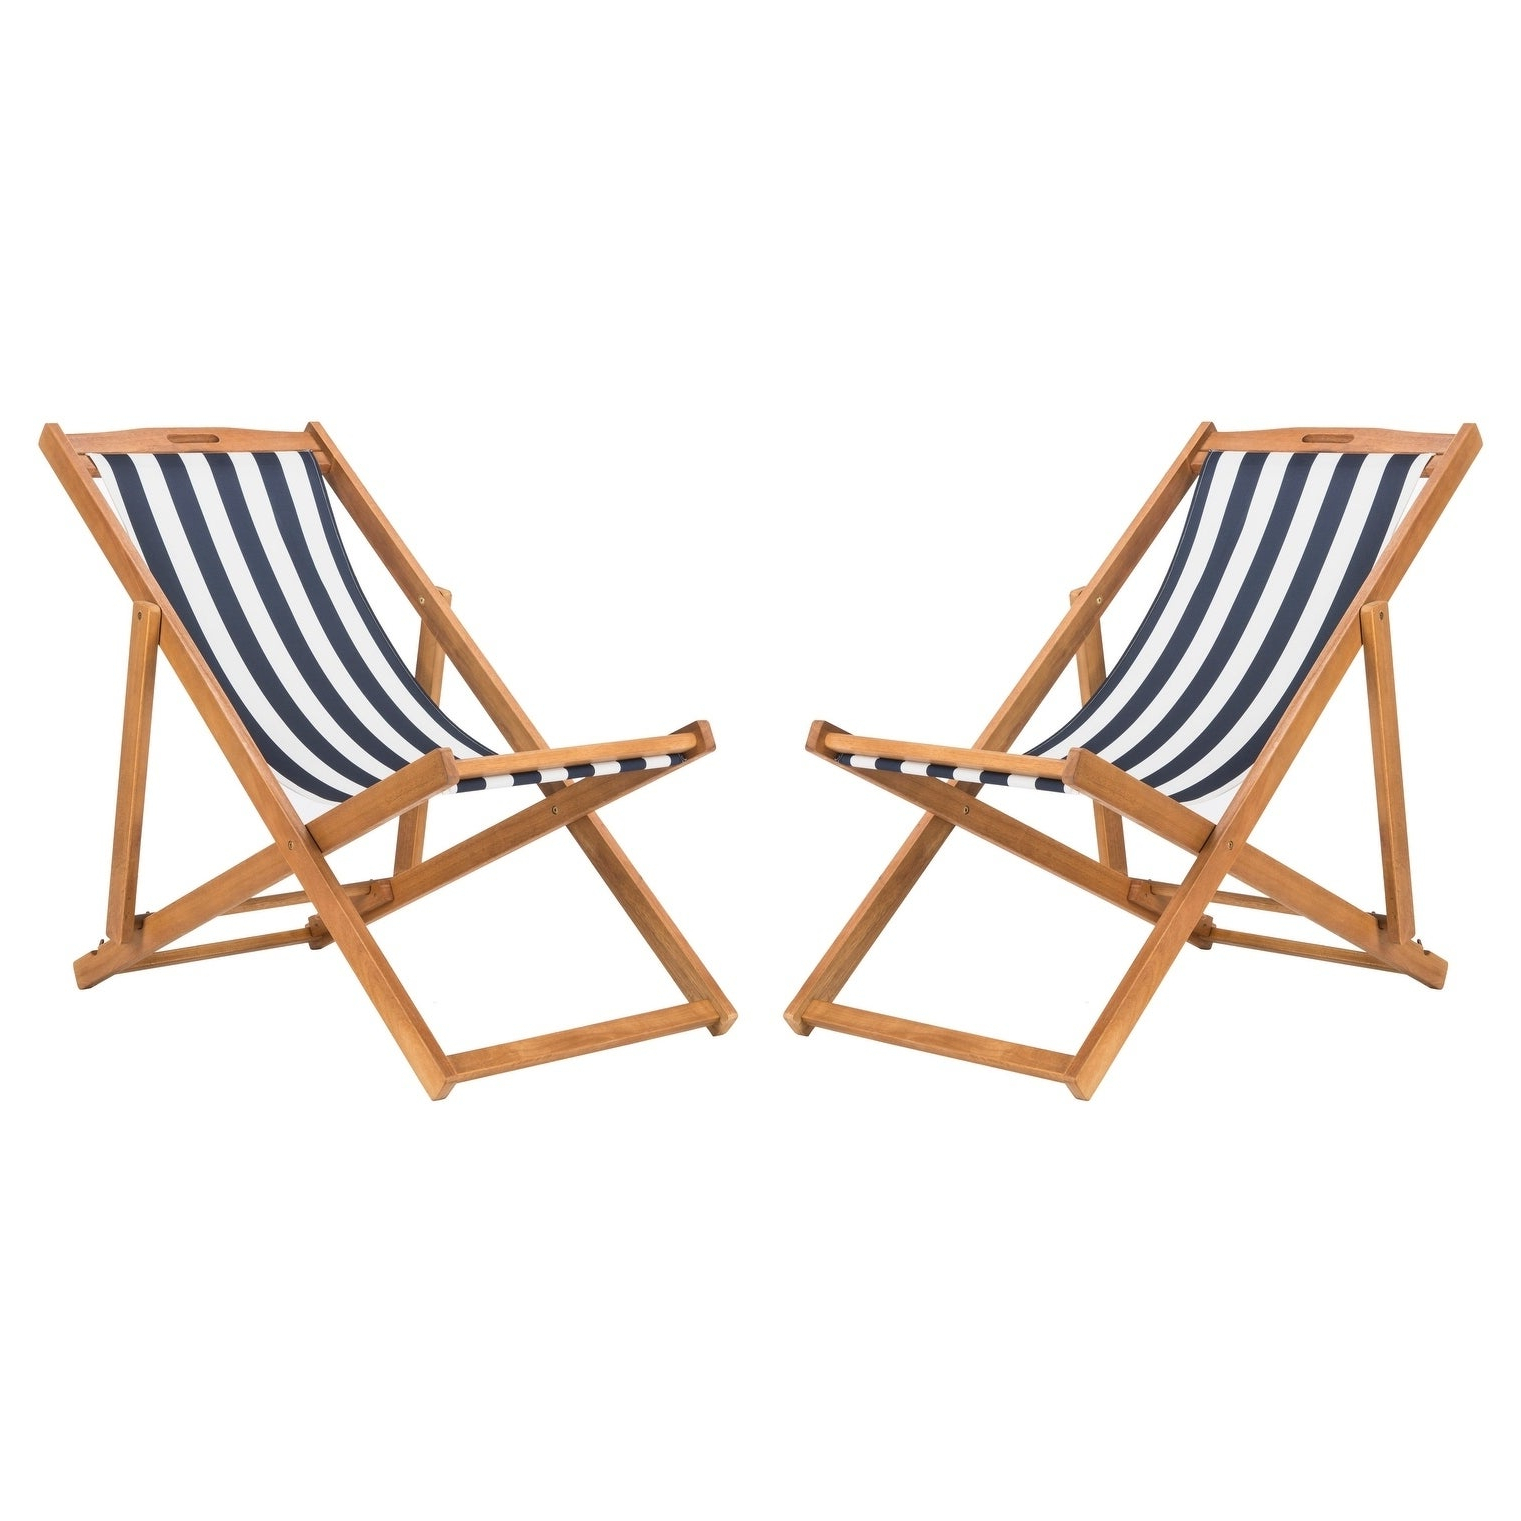 Safavieh Outdoor Living Loren Foldable Sling Chair – Navy / White (Set Of 2) Throughout Favorite Outdoor Wood Sling Chairs (View 19 of 25)